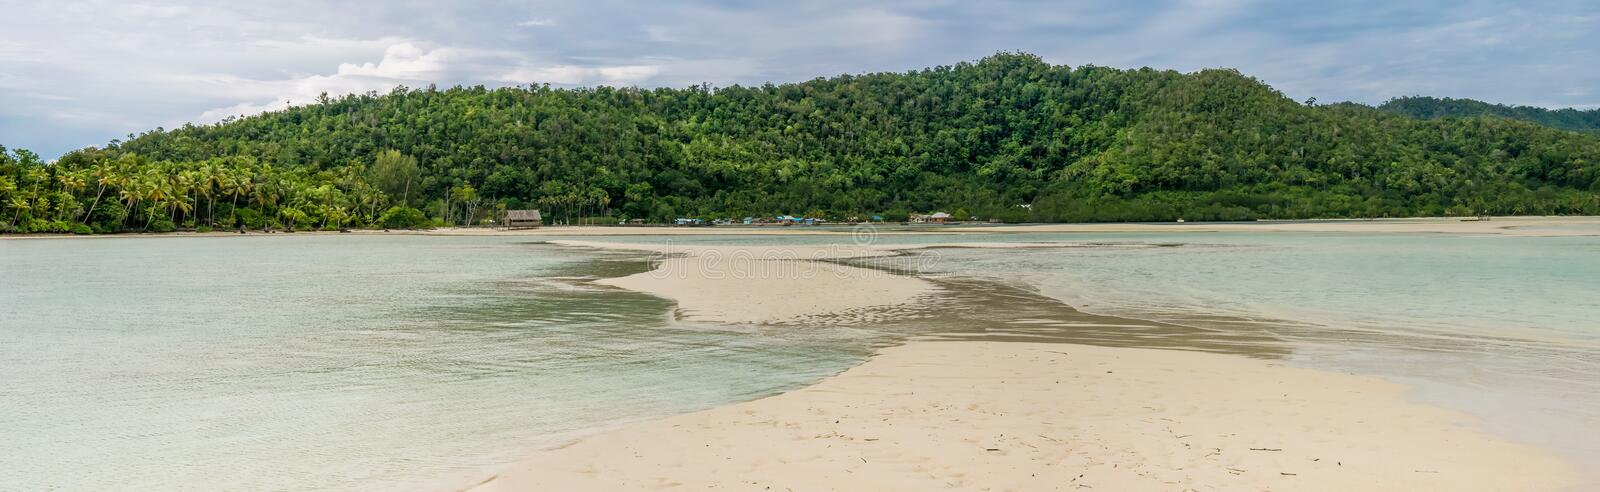 Sandy Bank in front of Local Village on Monsuar Island. Raja Ampat, Indonesia, West Papua. Sandy Bank in front of Local Village on Monsuar Island. Raja Ampat royalty free stock image